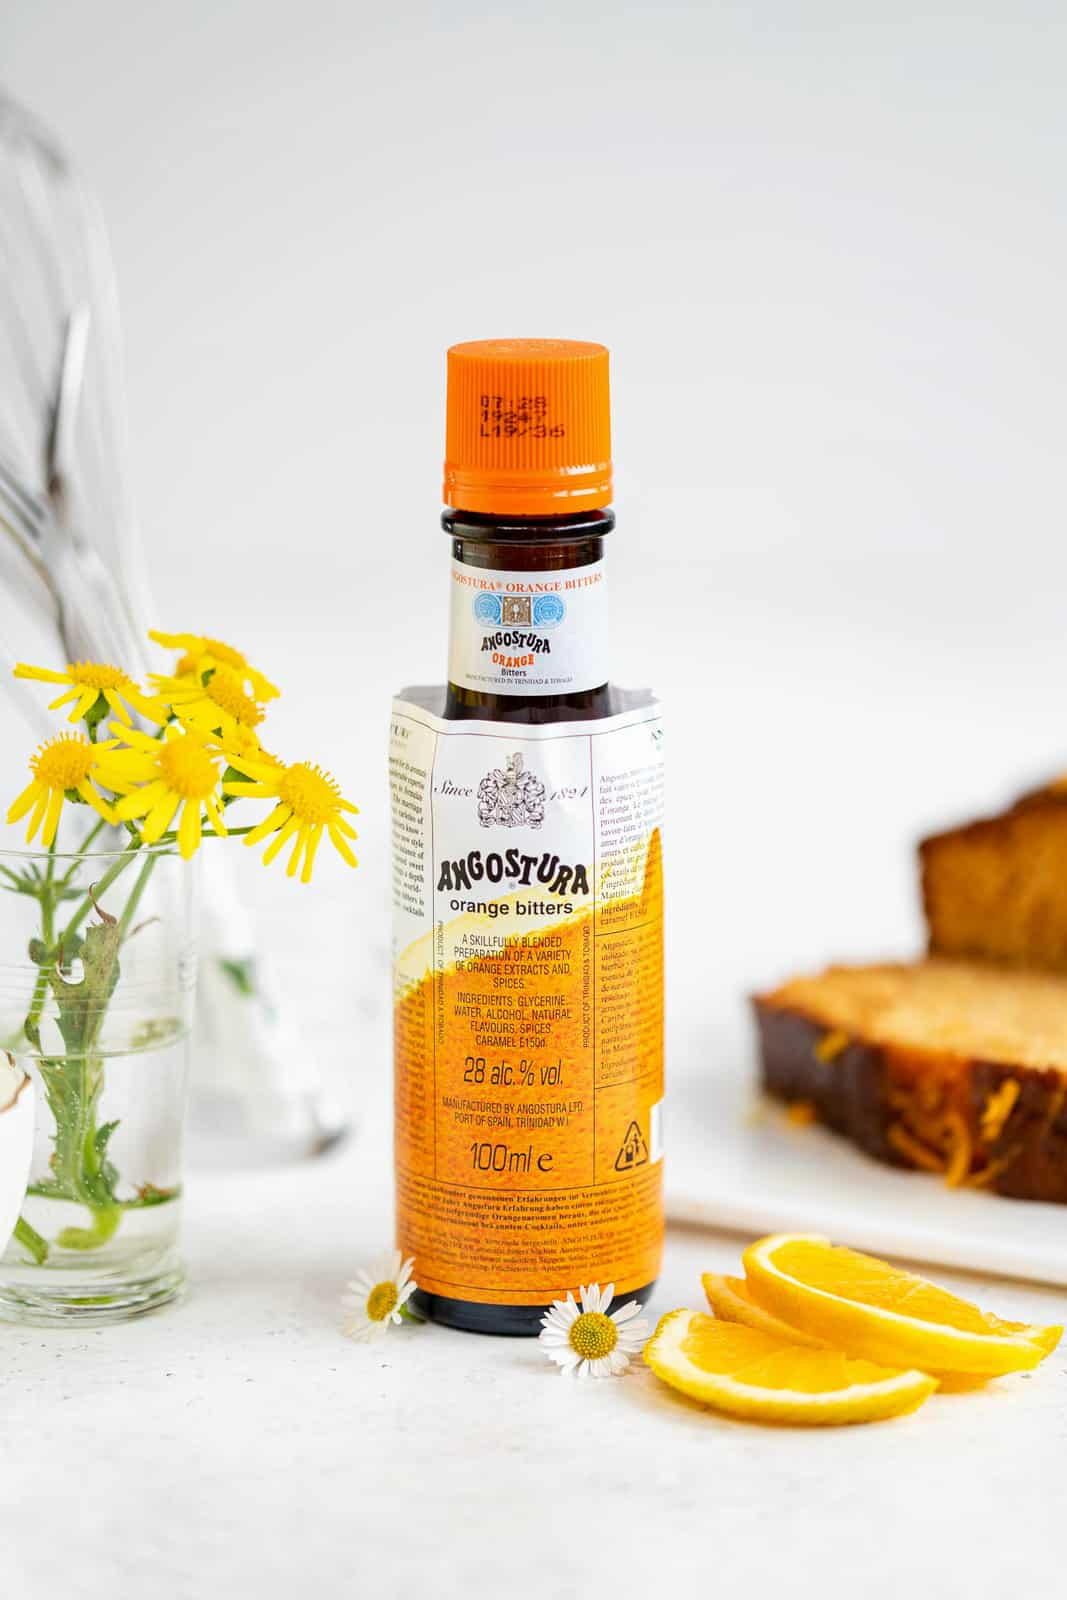 bottle of Angostura orange bitters